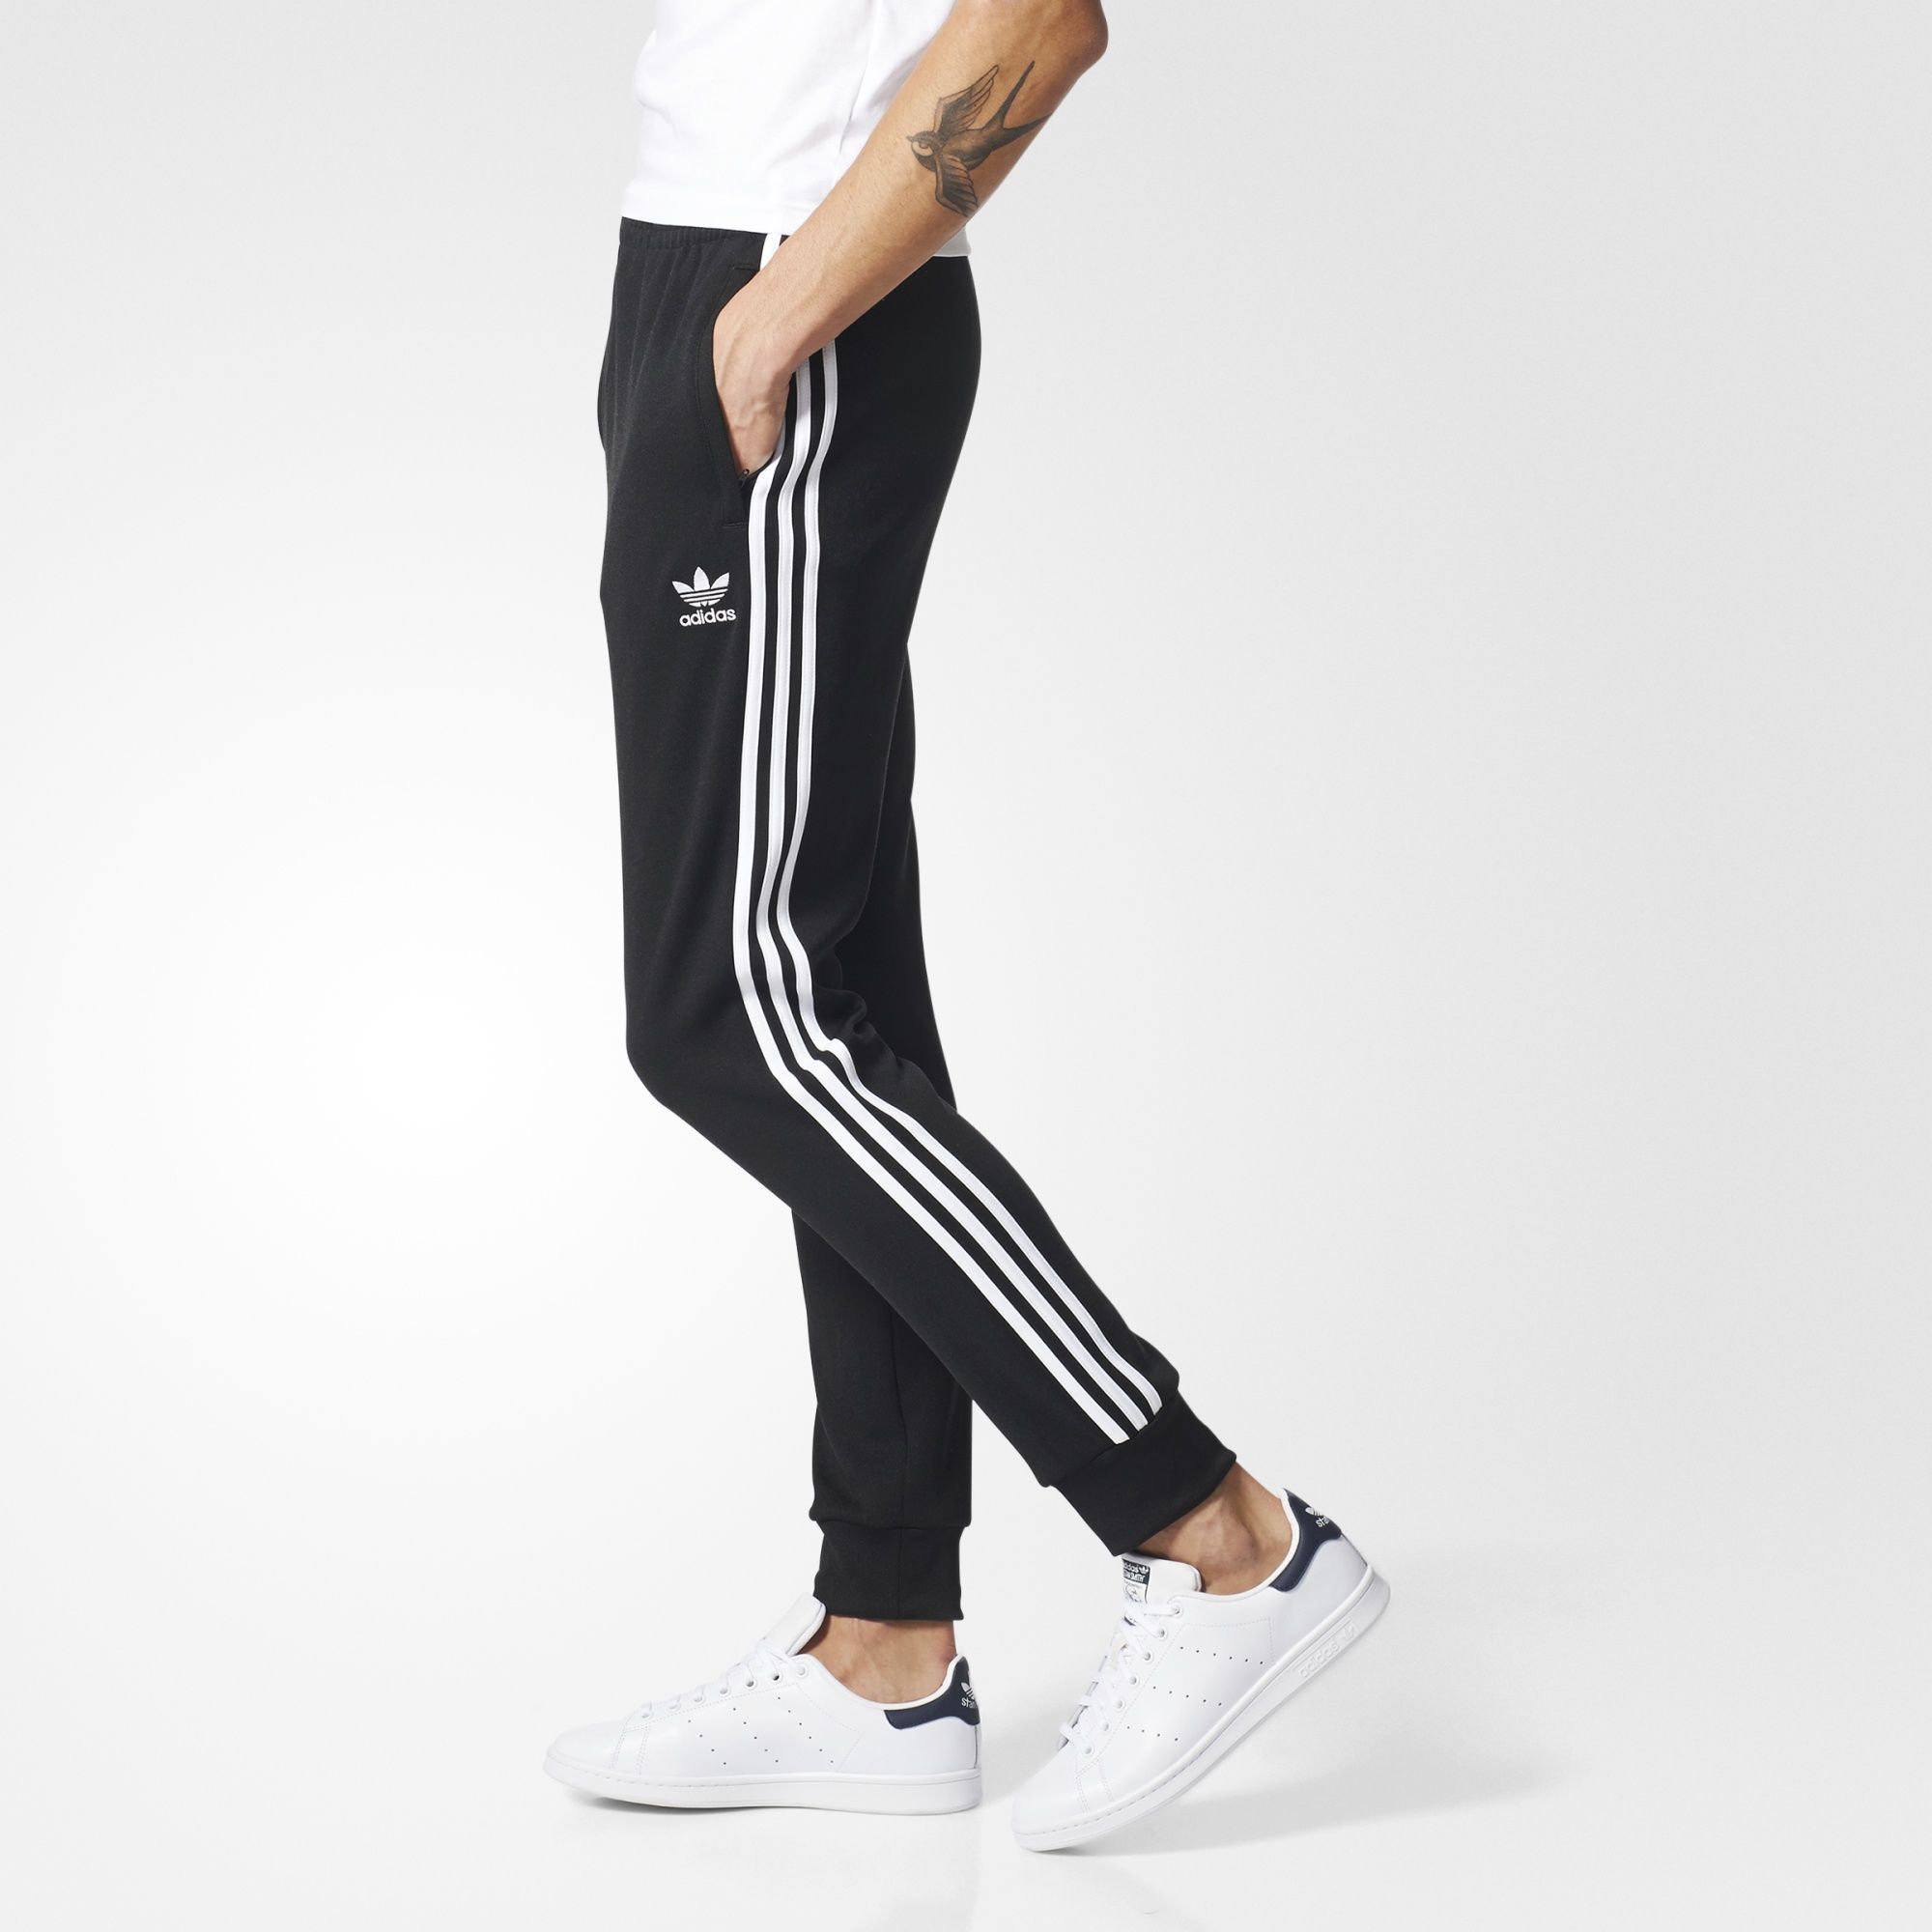 adidas - Superstar Cuffed Track Pants   Wishlist in 2019   Adidas ... 2aafbc7f07c